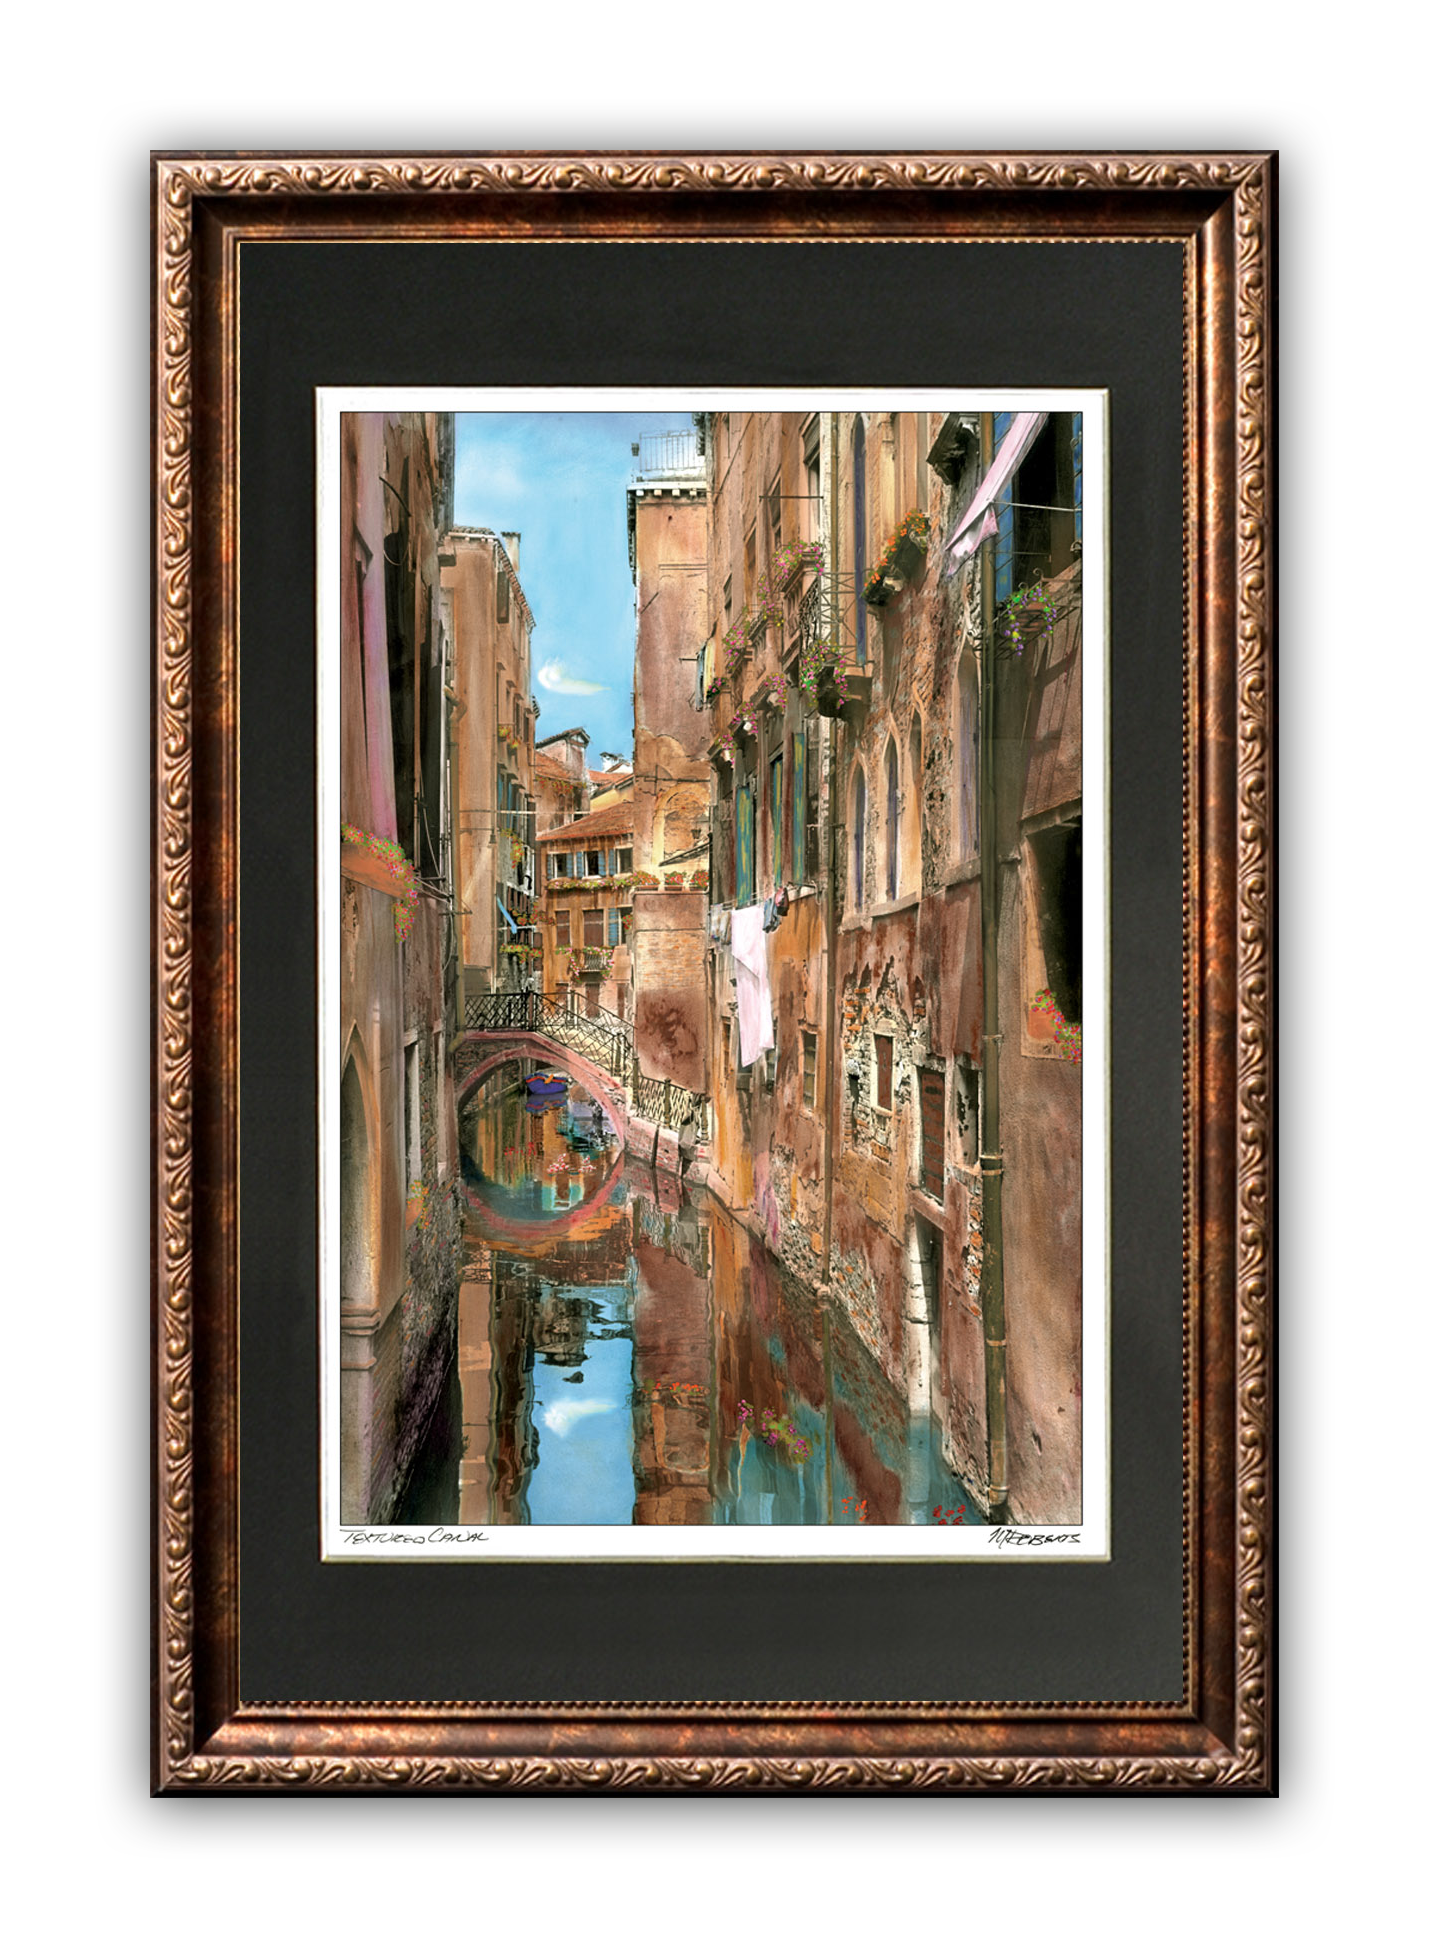 """Textured Canal"" Signed Matted & Framed"